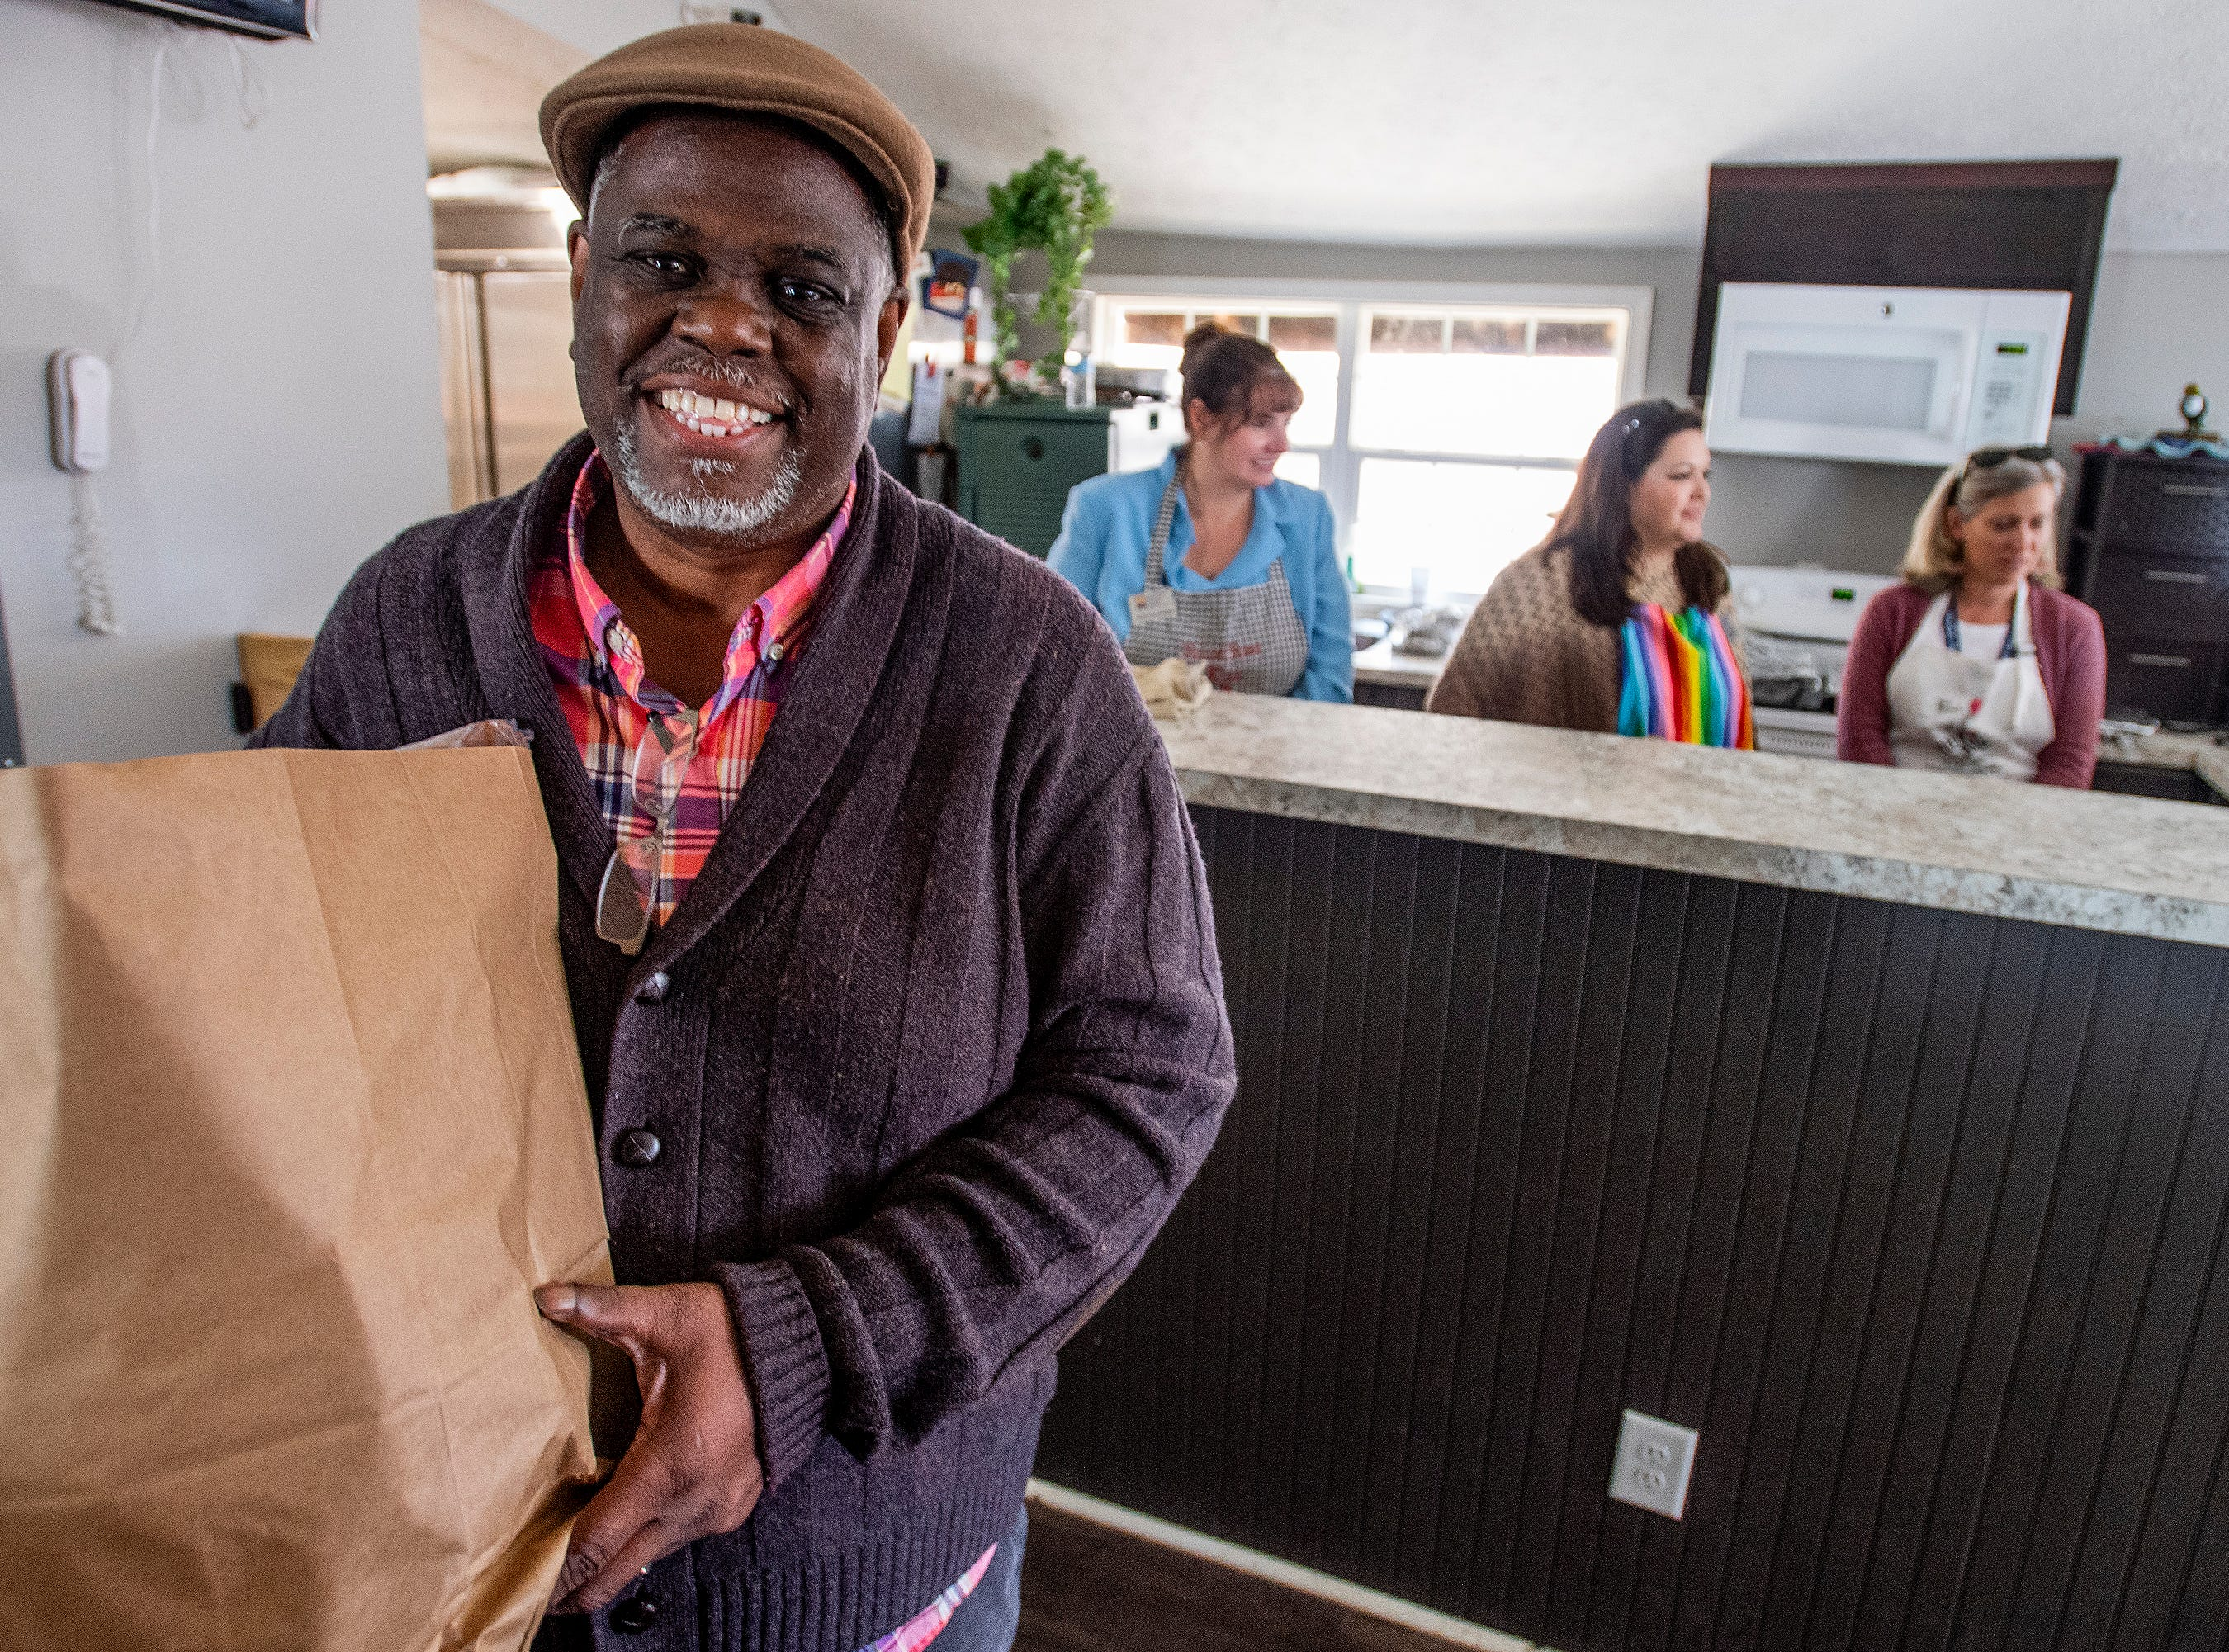 Ken Austin, executive director of the Mercy House and pastor at New Walk of Life Church, helps hand out groceries at Mercy House in Montgomery, Ala., on Wednesday February 13, 2019.